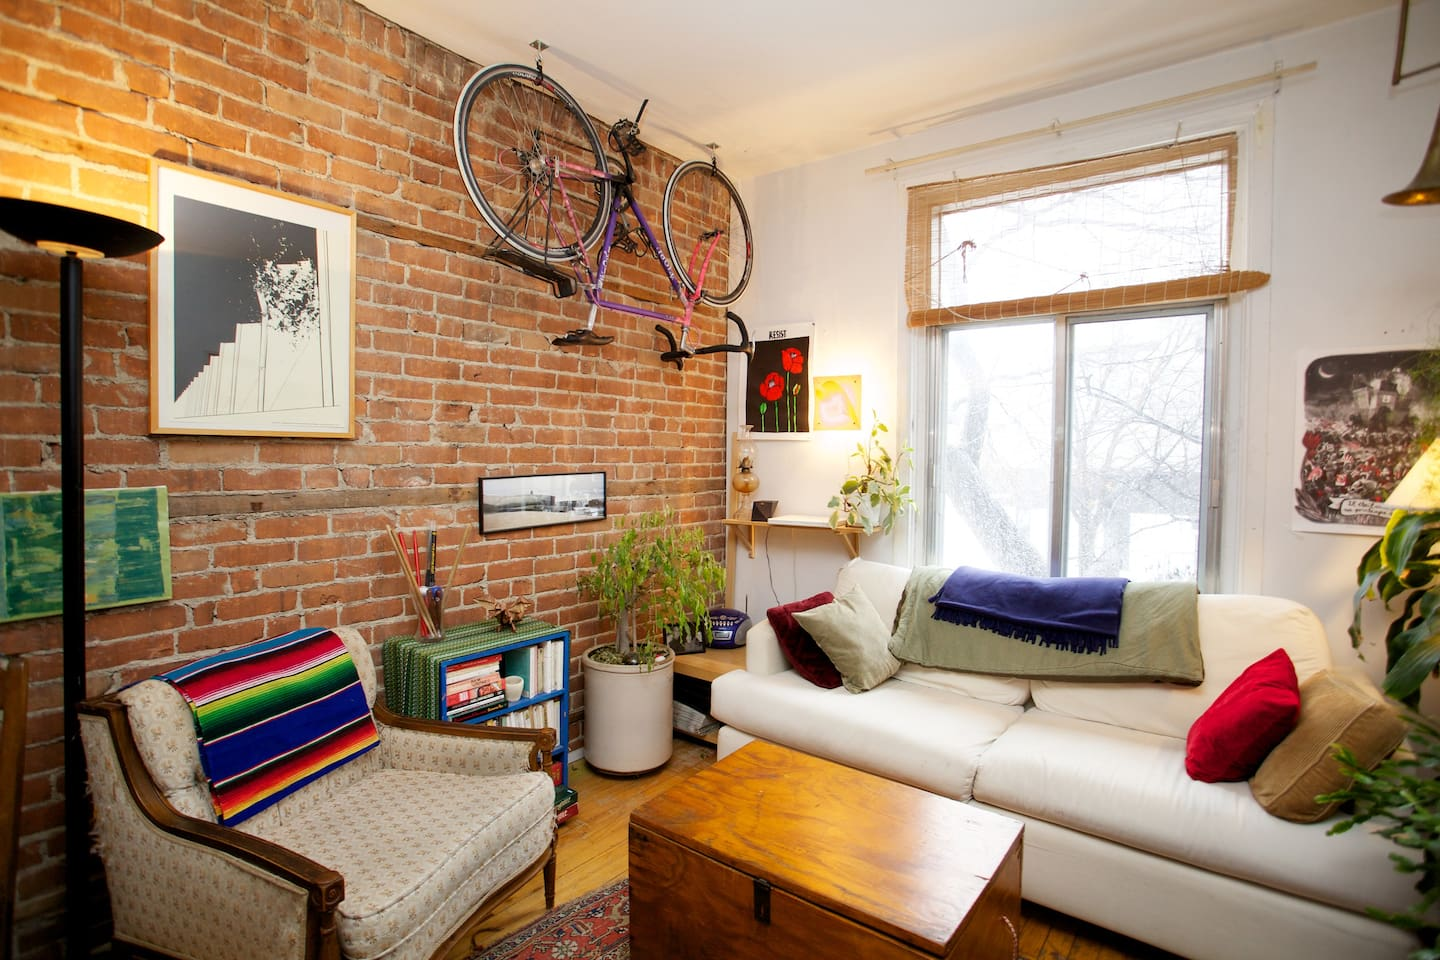 Charming Mile End flat